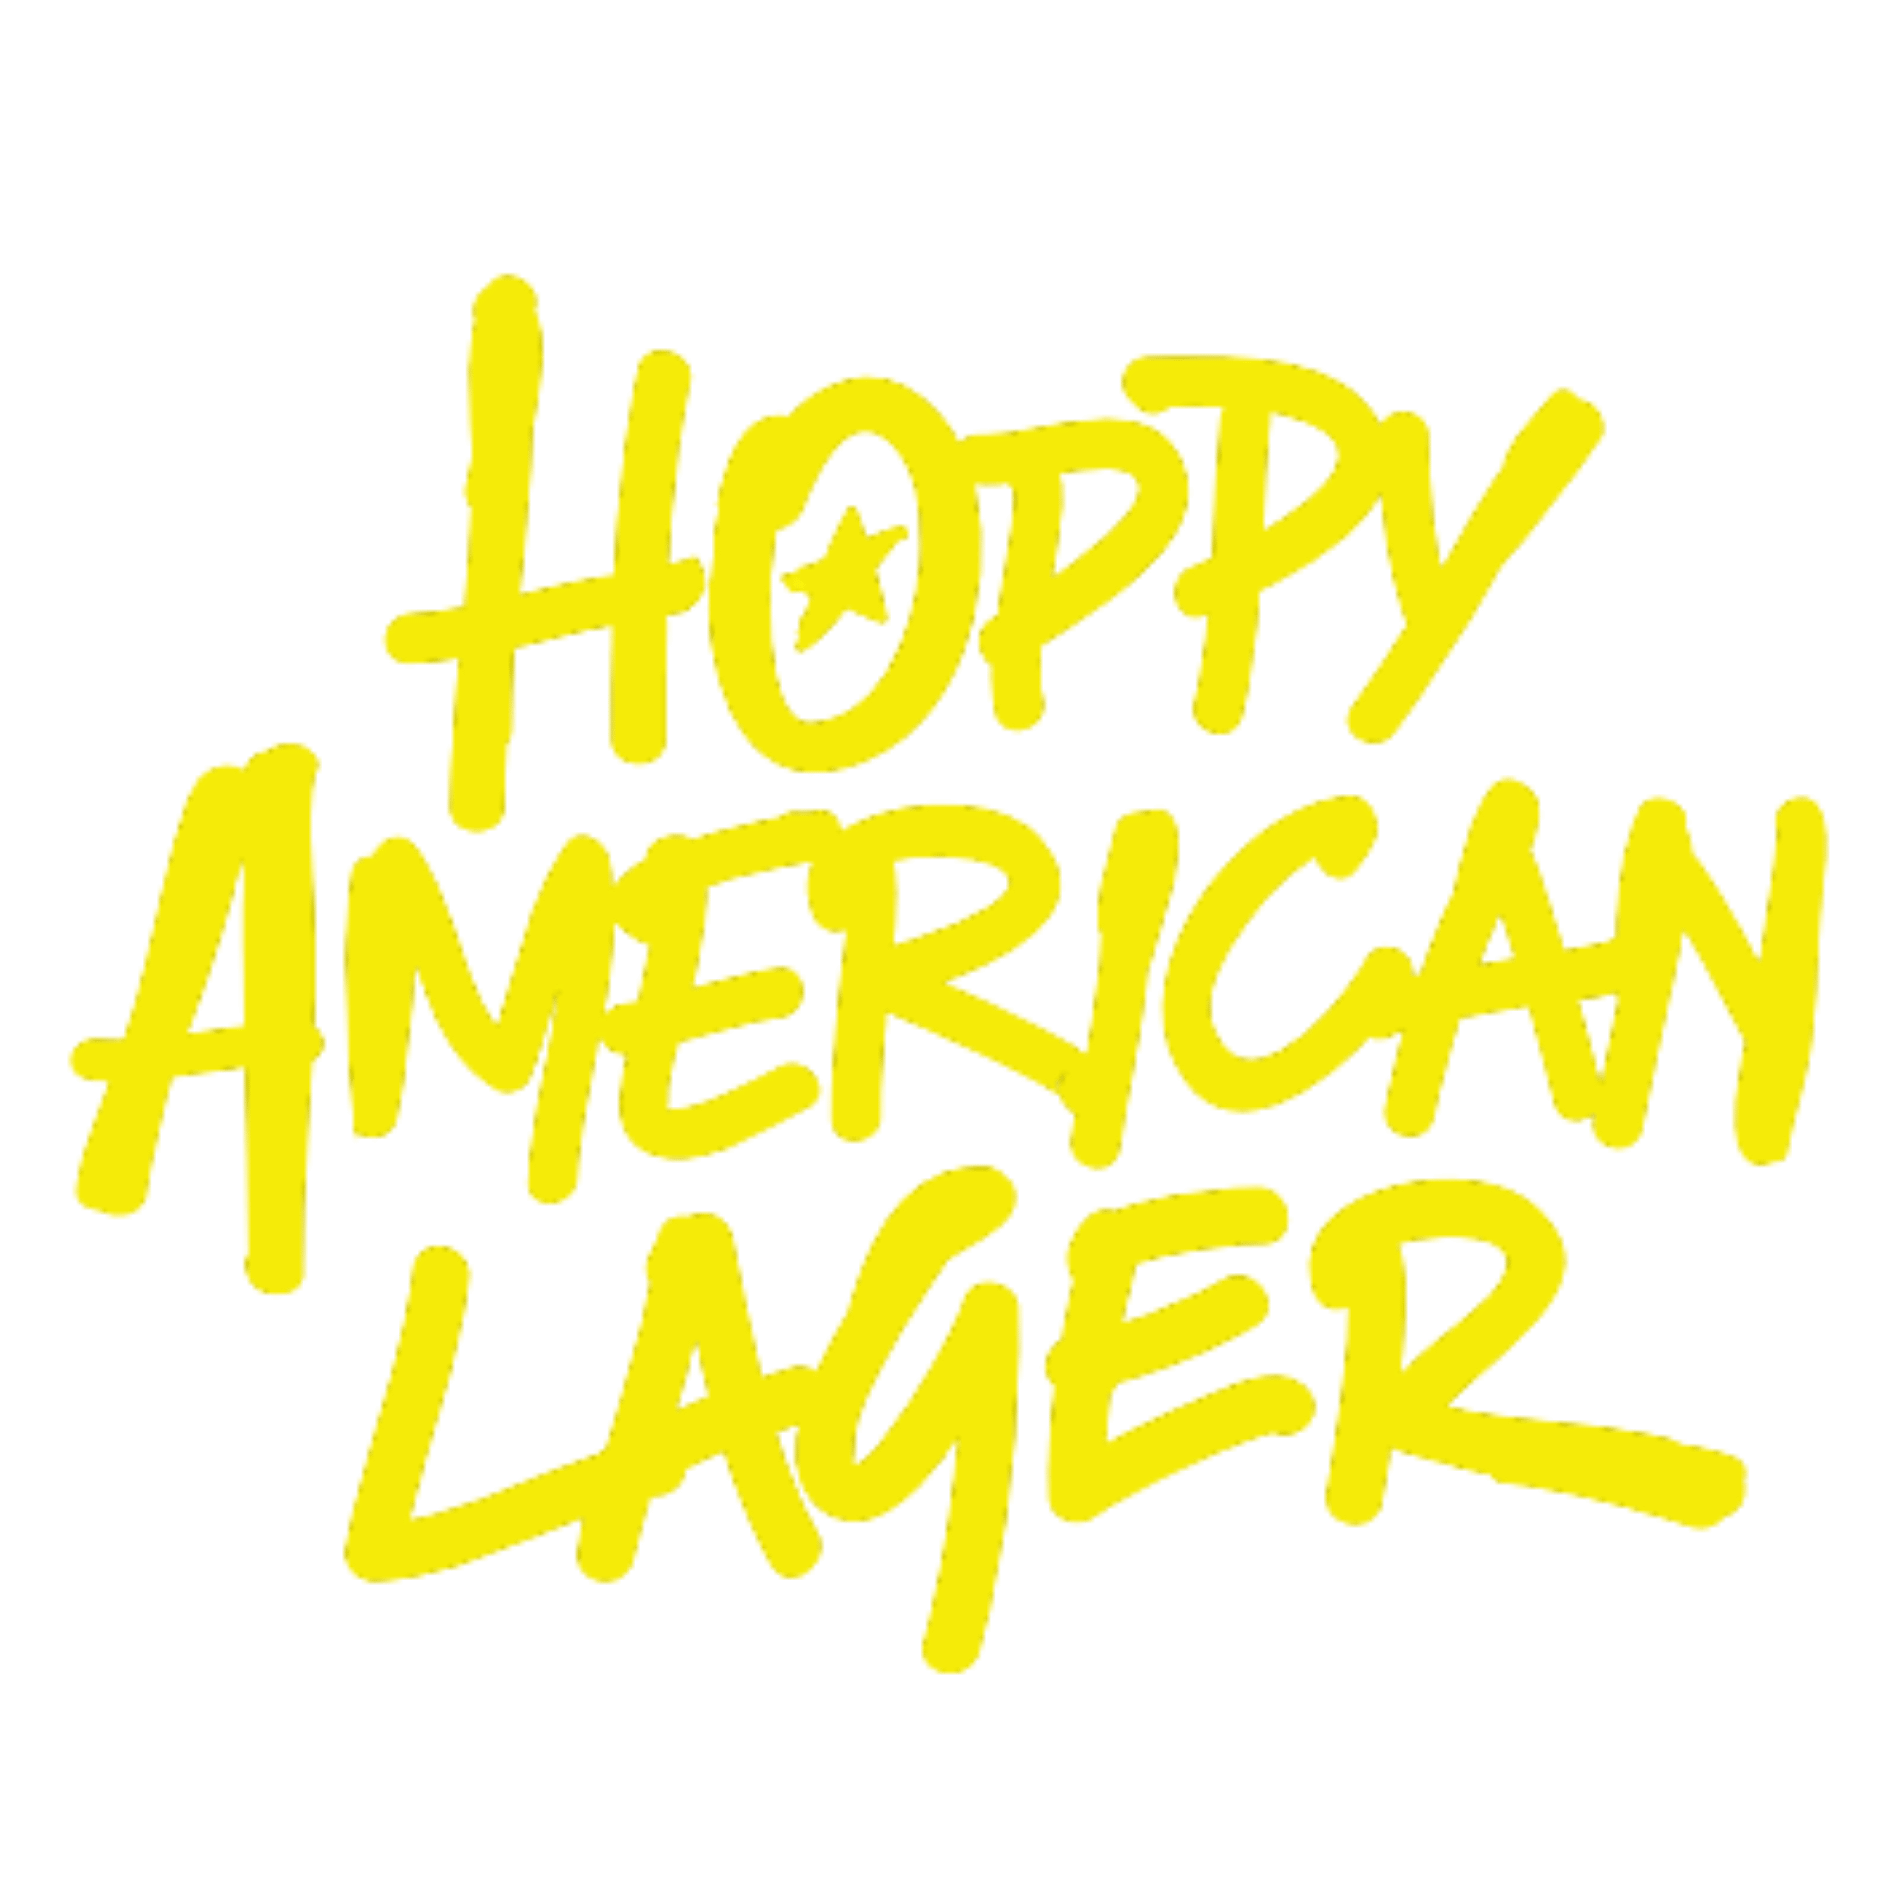 Hop For fun - Hoppy American Lager